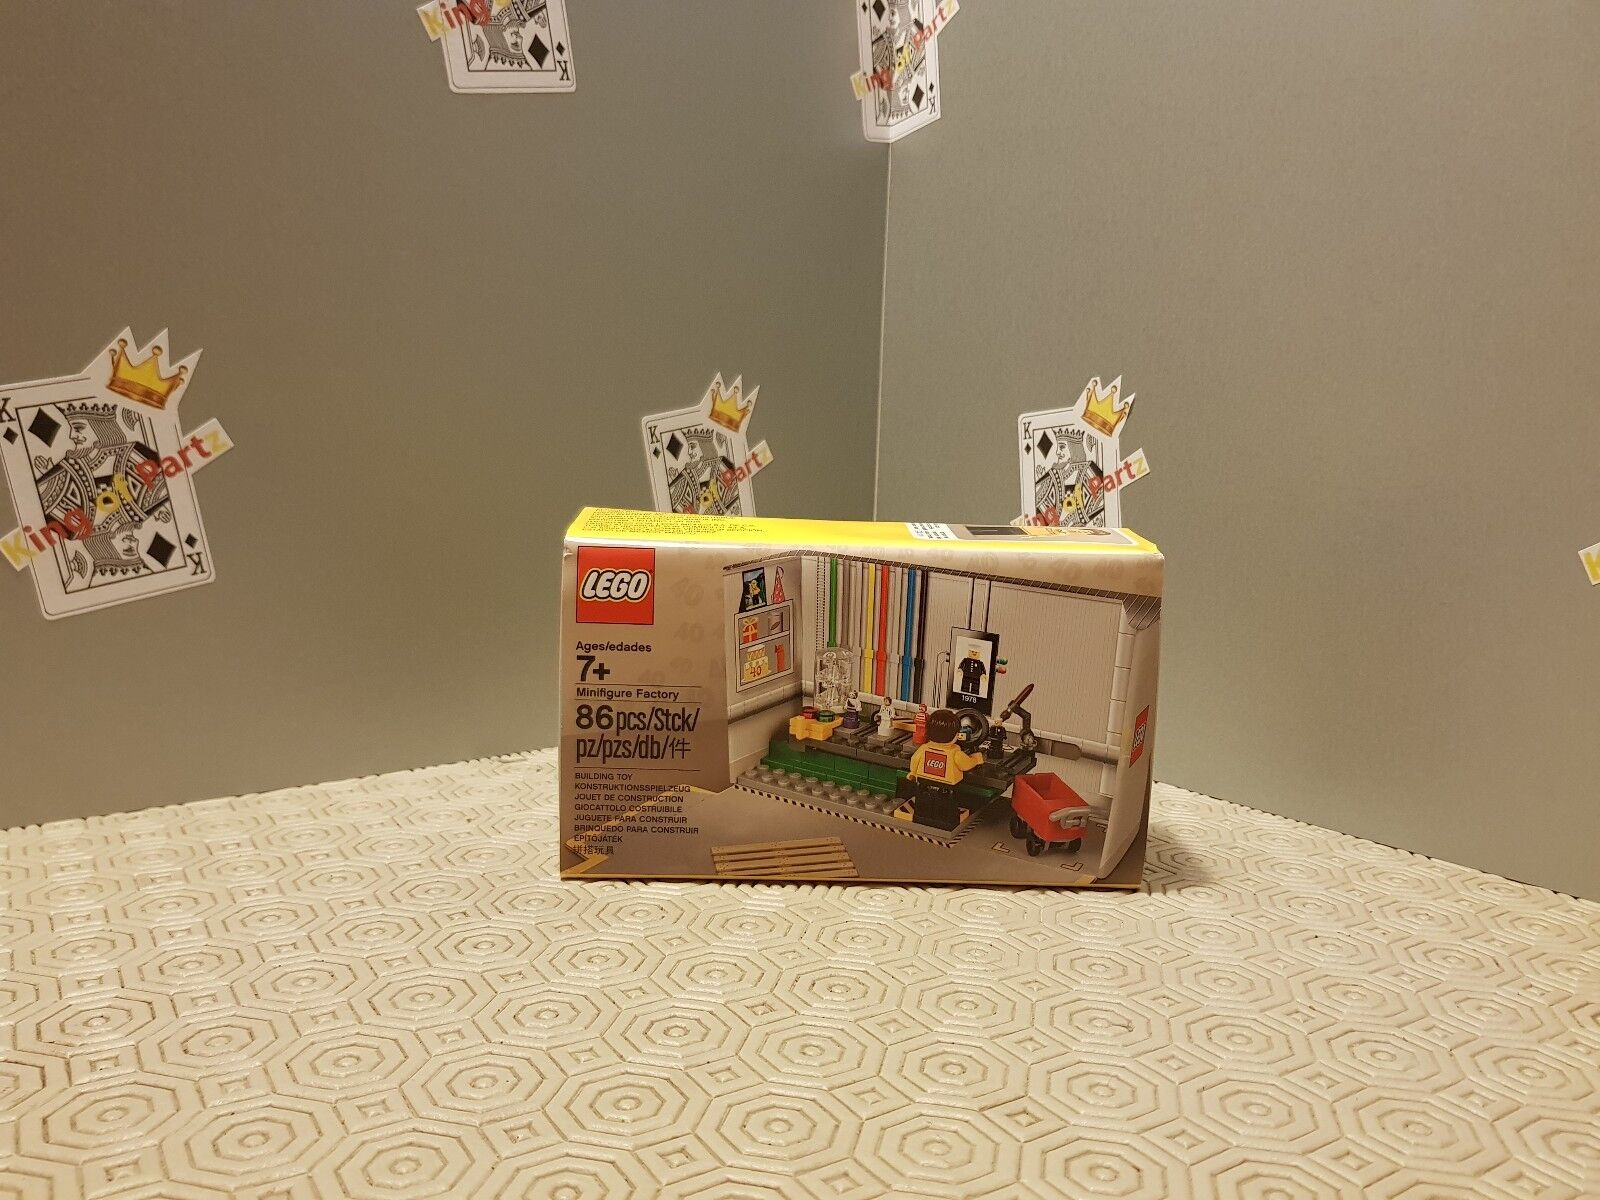 LEGO 5005358 MINIFIGURE FACTORY EXCLUSIVE NEW AND SEALED